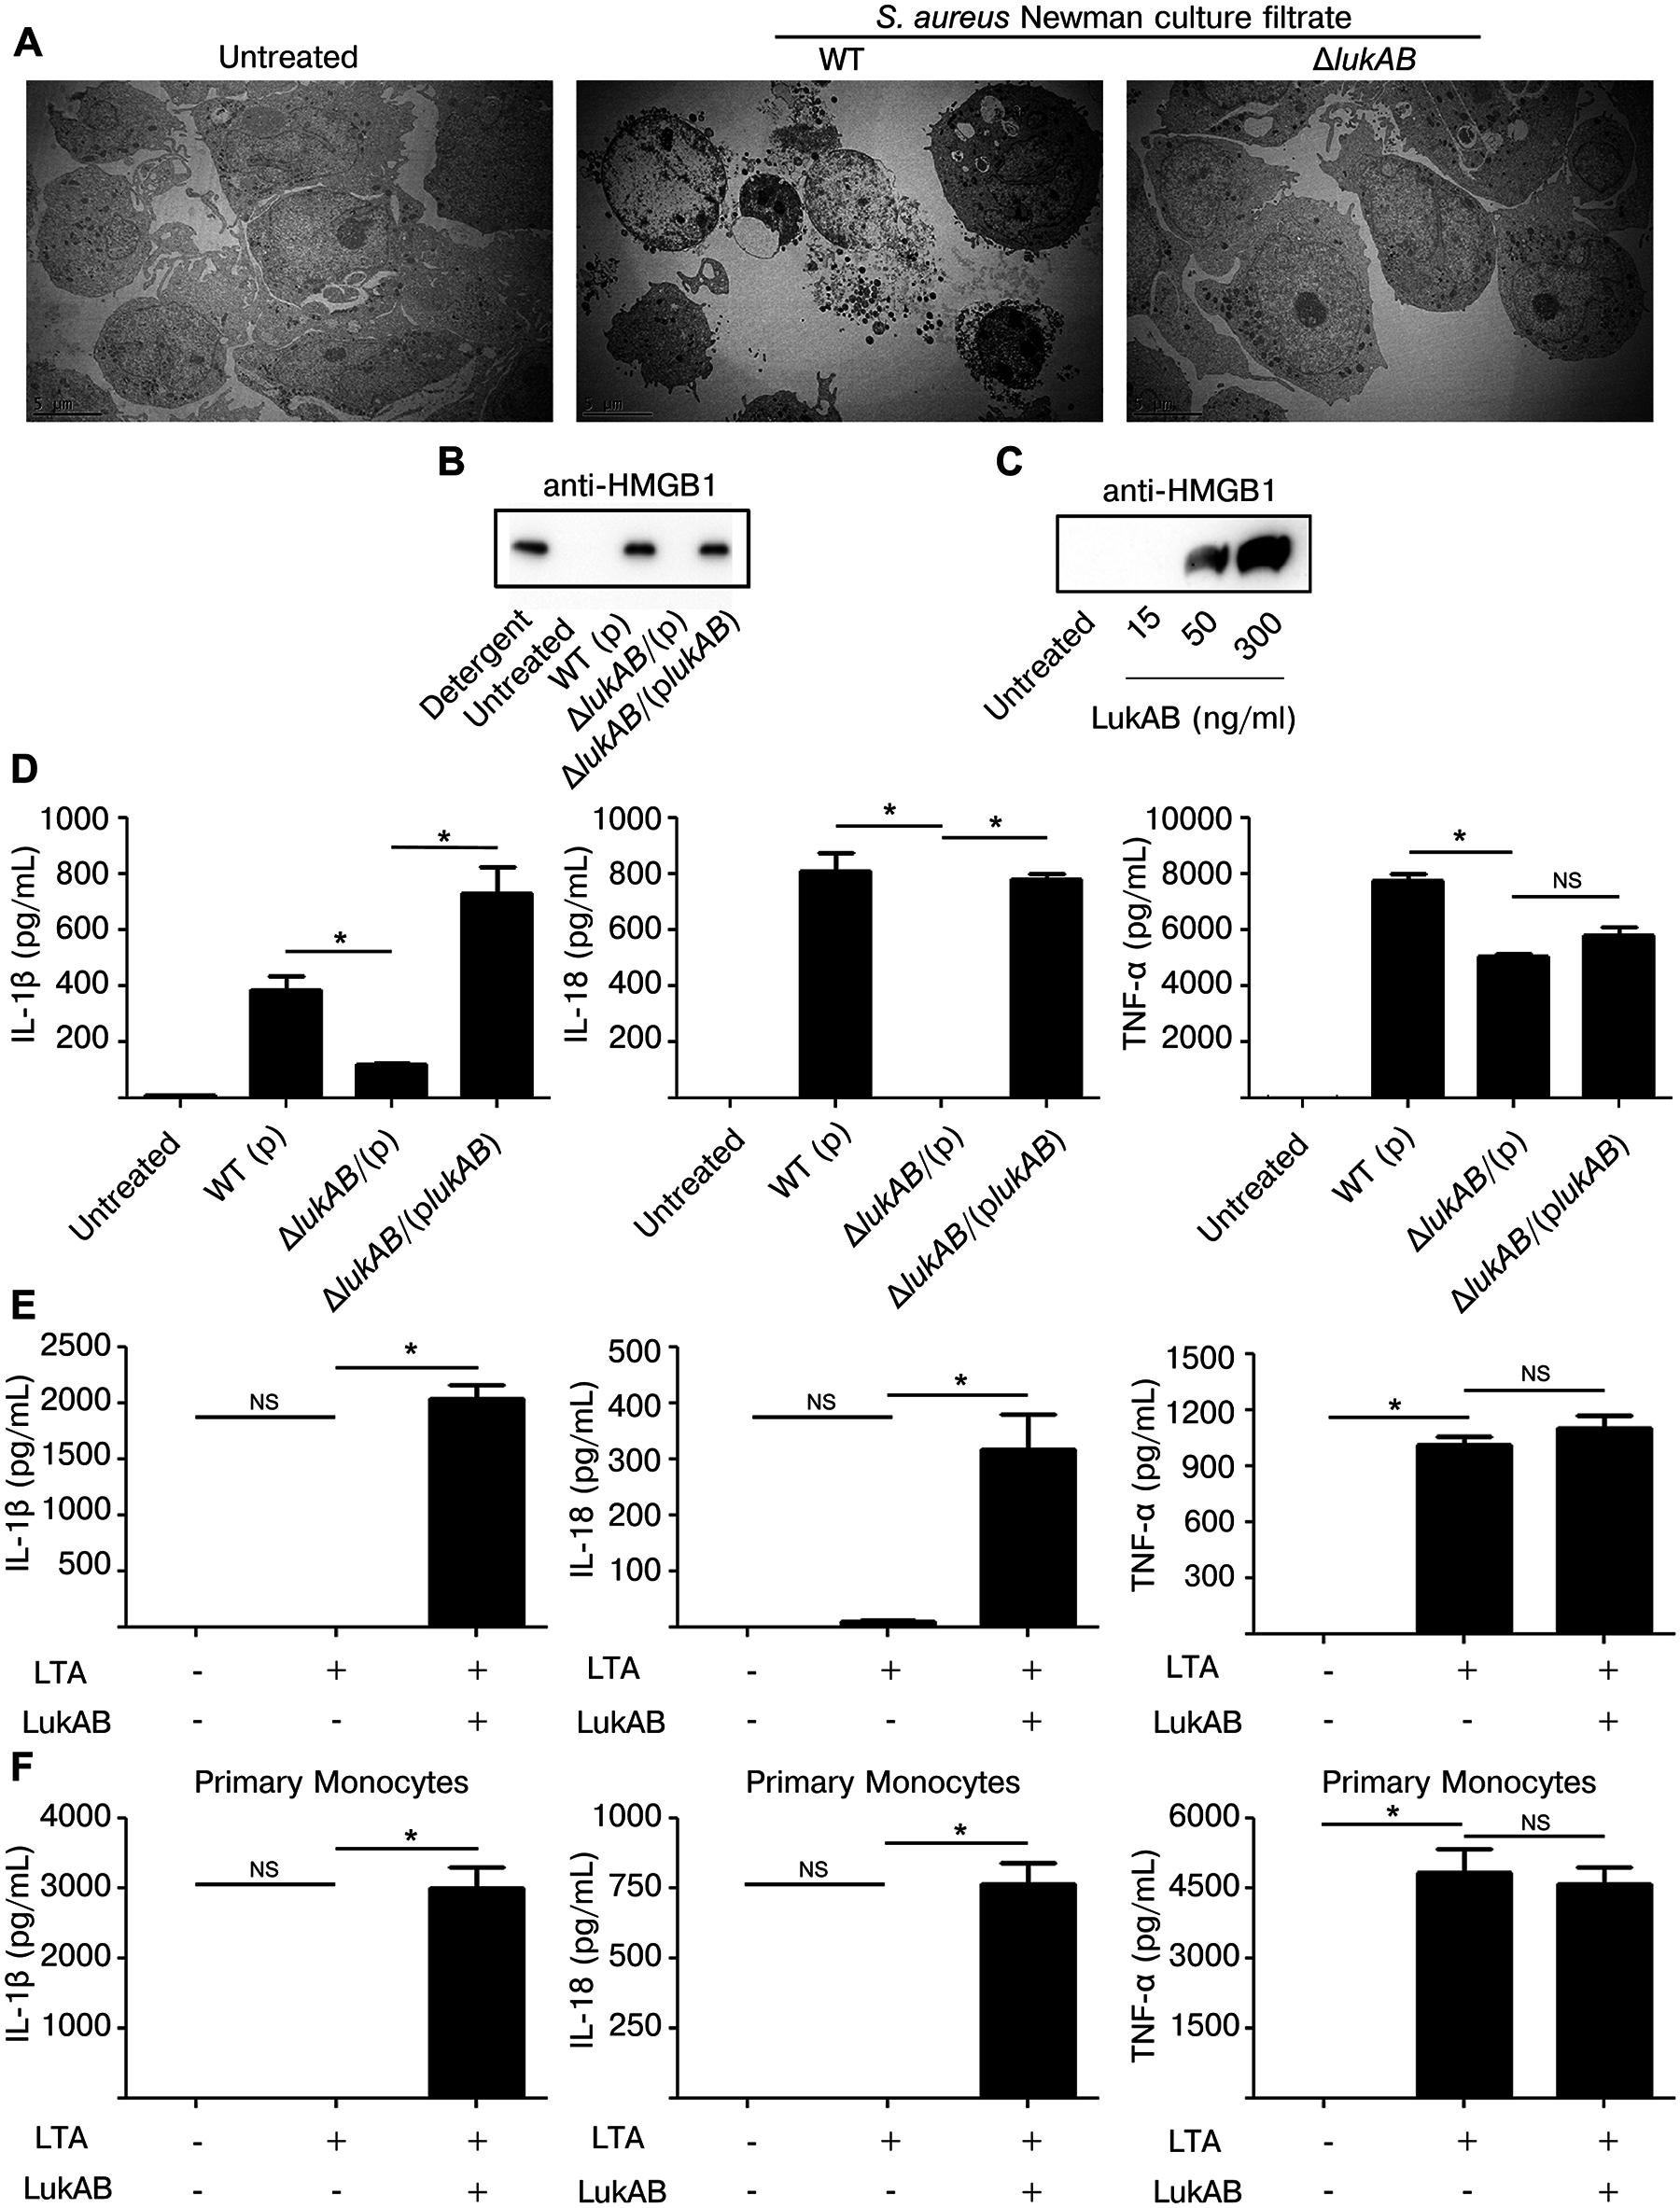 LukAB induces necrotic cell death and secretion of pro-inflammatory cytokines IL-1β and IL-18.